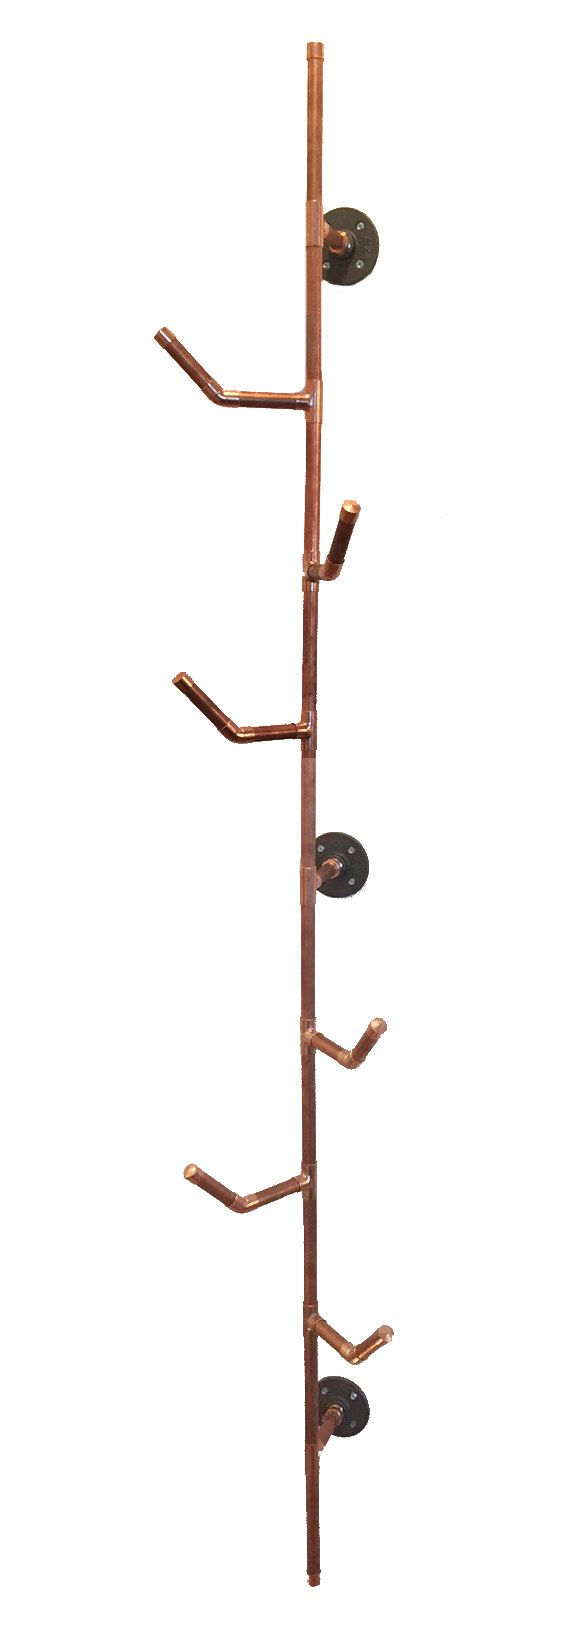 HANG IT Coat Rack- 6 series  Made of 100% Copper Pipe Size: 66H x 10 W 6 Hooks are arranged in a staggered pattern to provide maximum hanging potential. Mounts to wall in 3 places. Mounting Hardware included  * Also available in 3 hook option, check out my shop for this listing